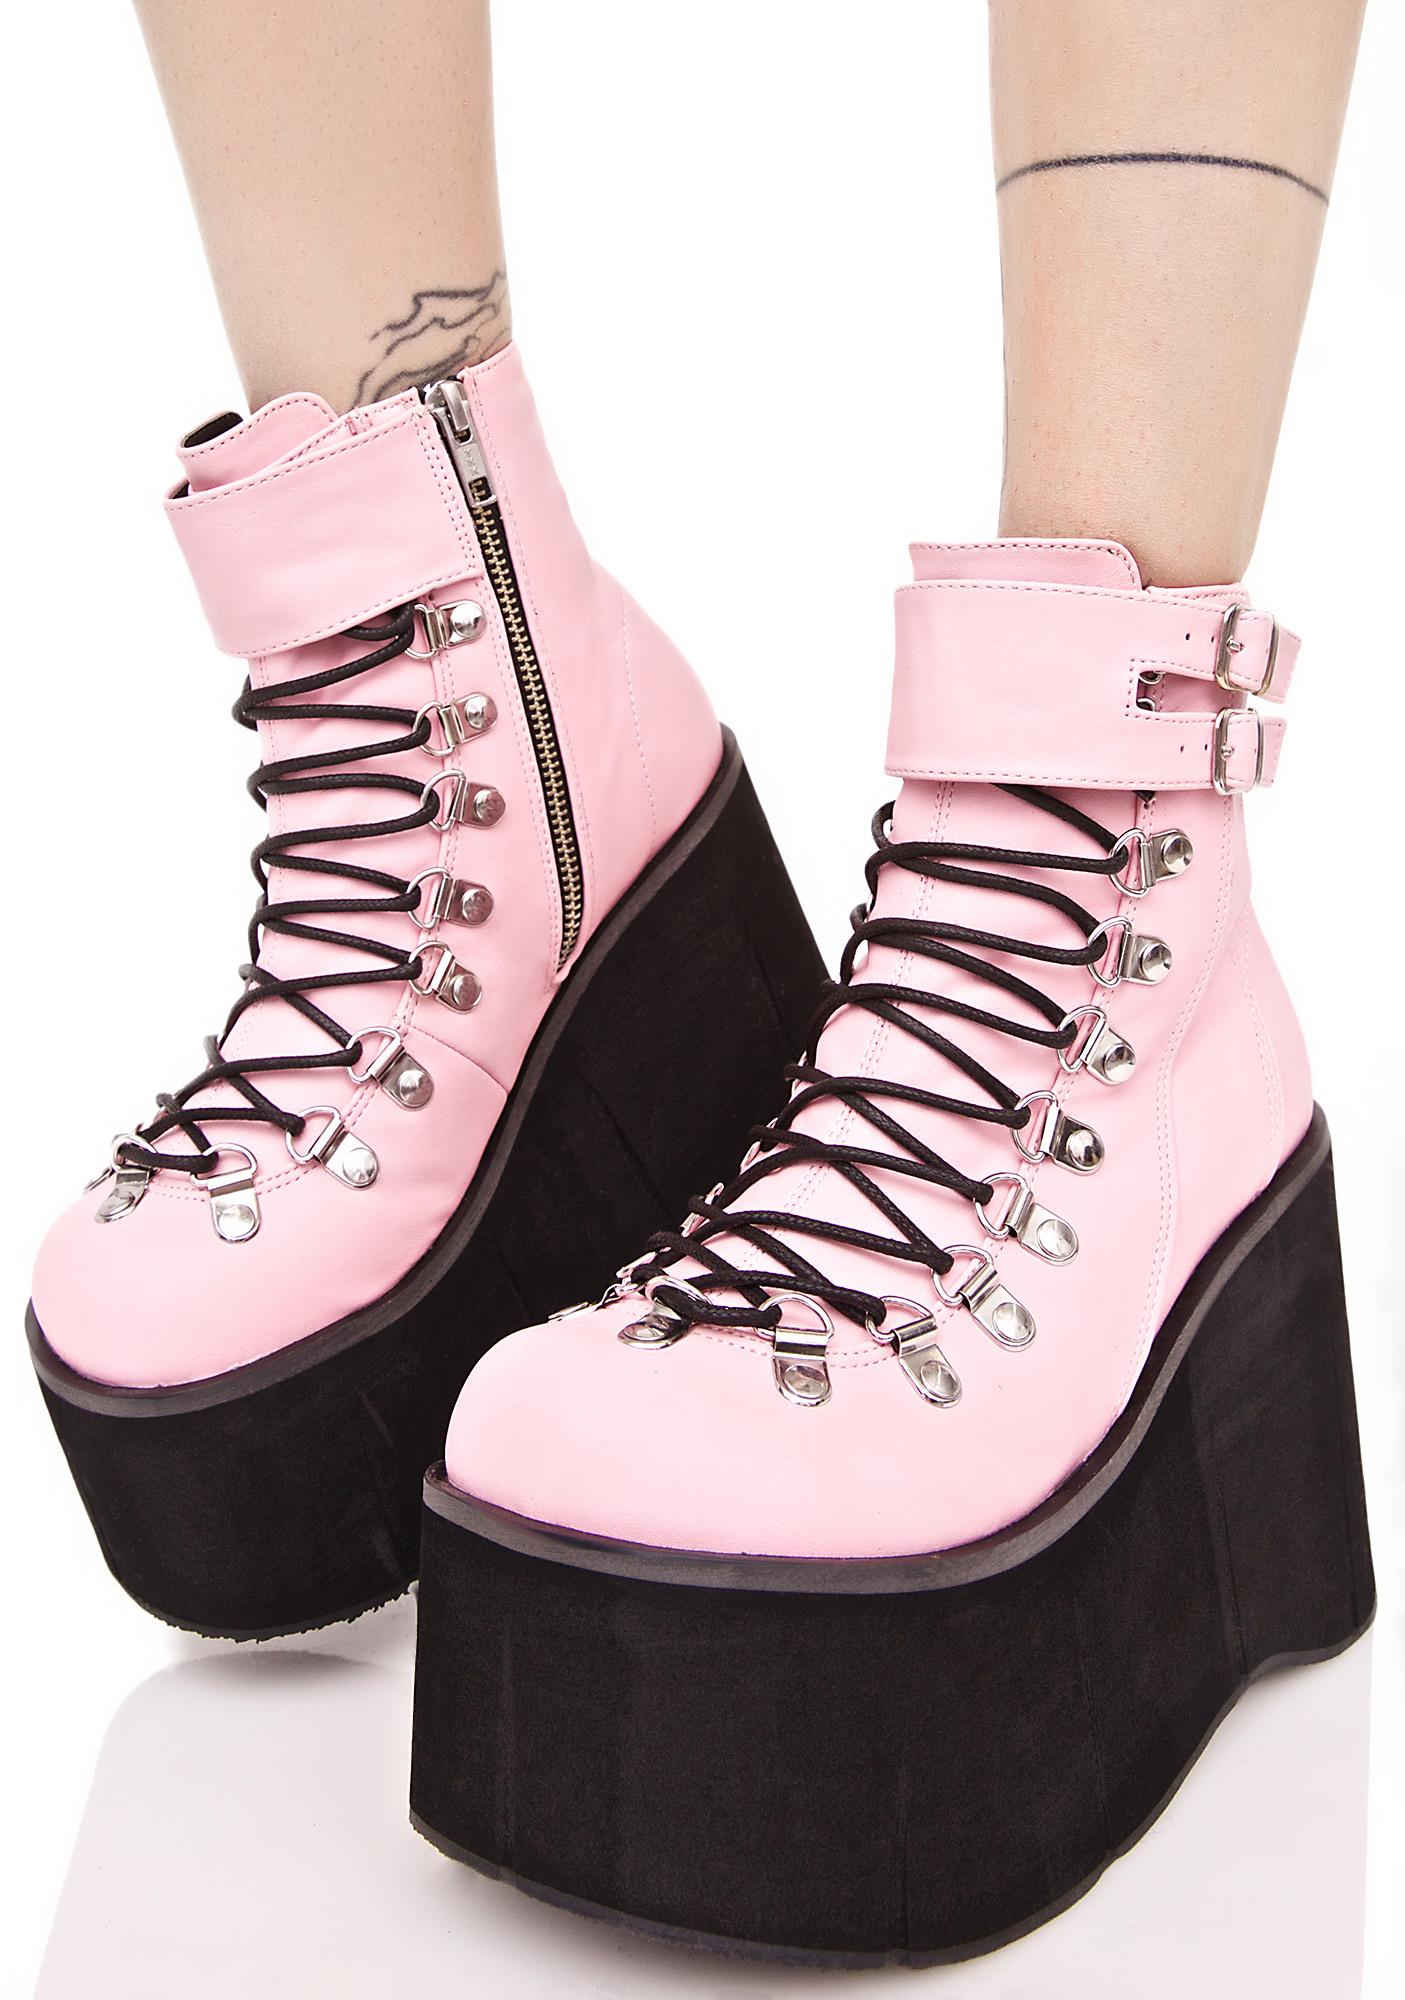 dc8b1b6e20 Demonia Sweetie Kera Lace-Up Platform Boots